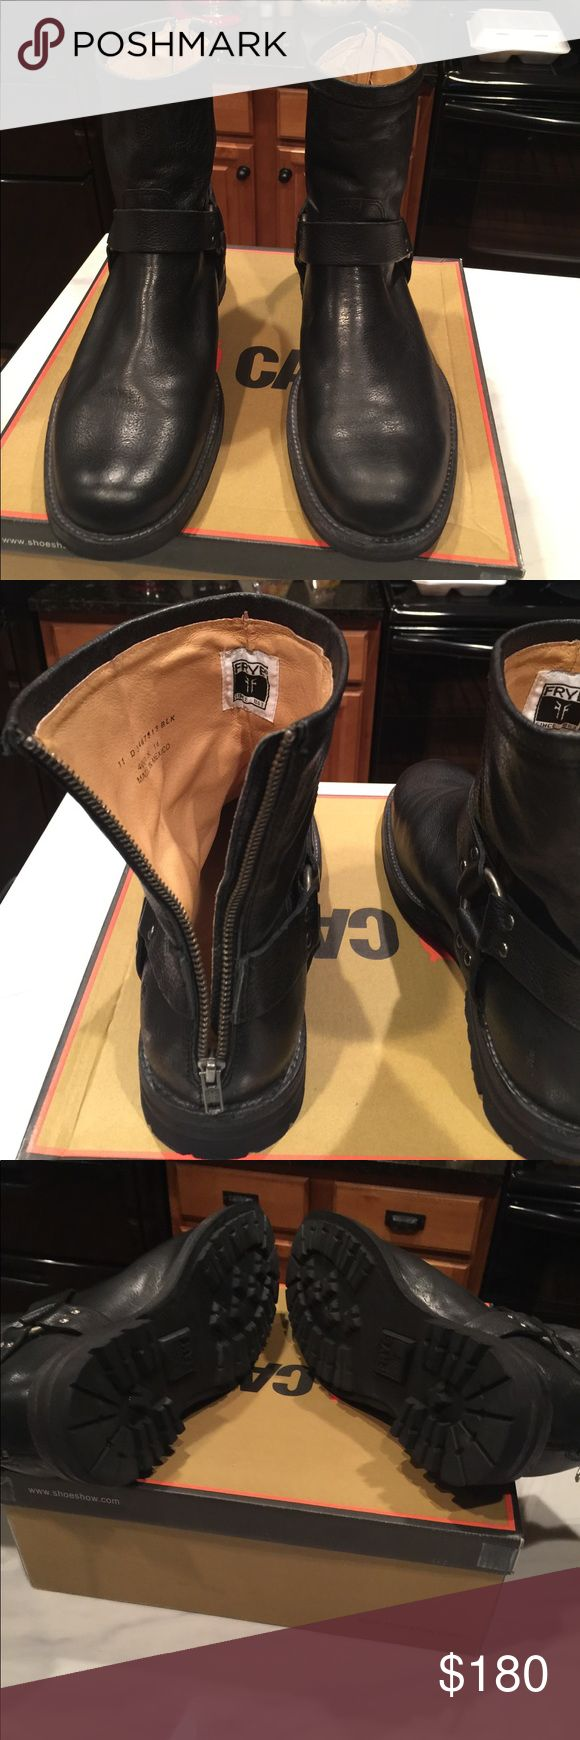 Men's Frye Boots Black leather boots for sale. Work only once. Size 11 Frye Shoes Combat & Moto Boots